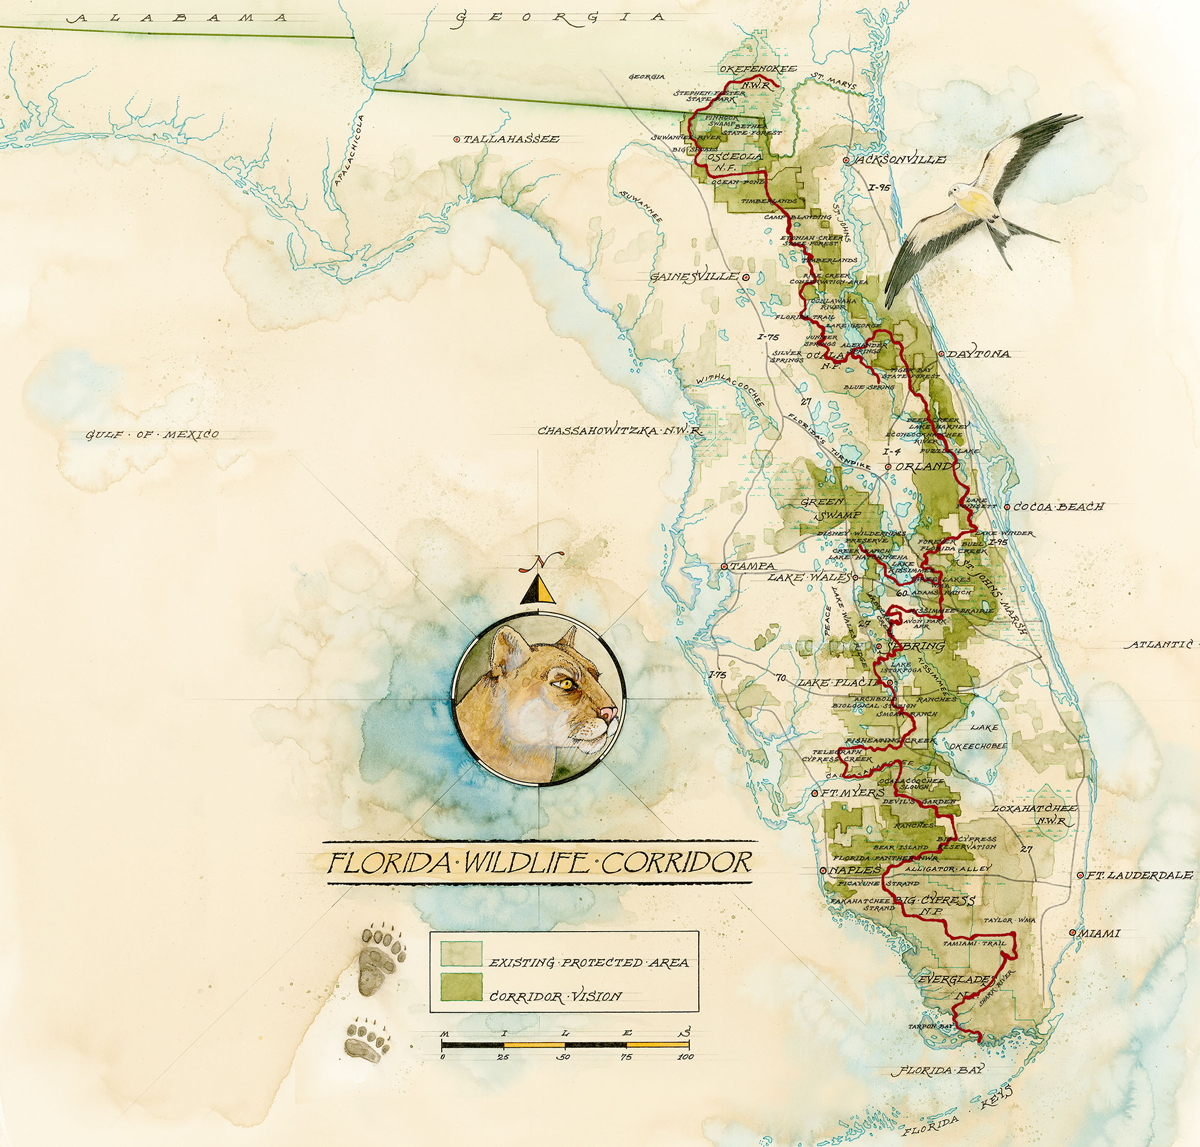 Everglades to Okefenokee